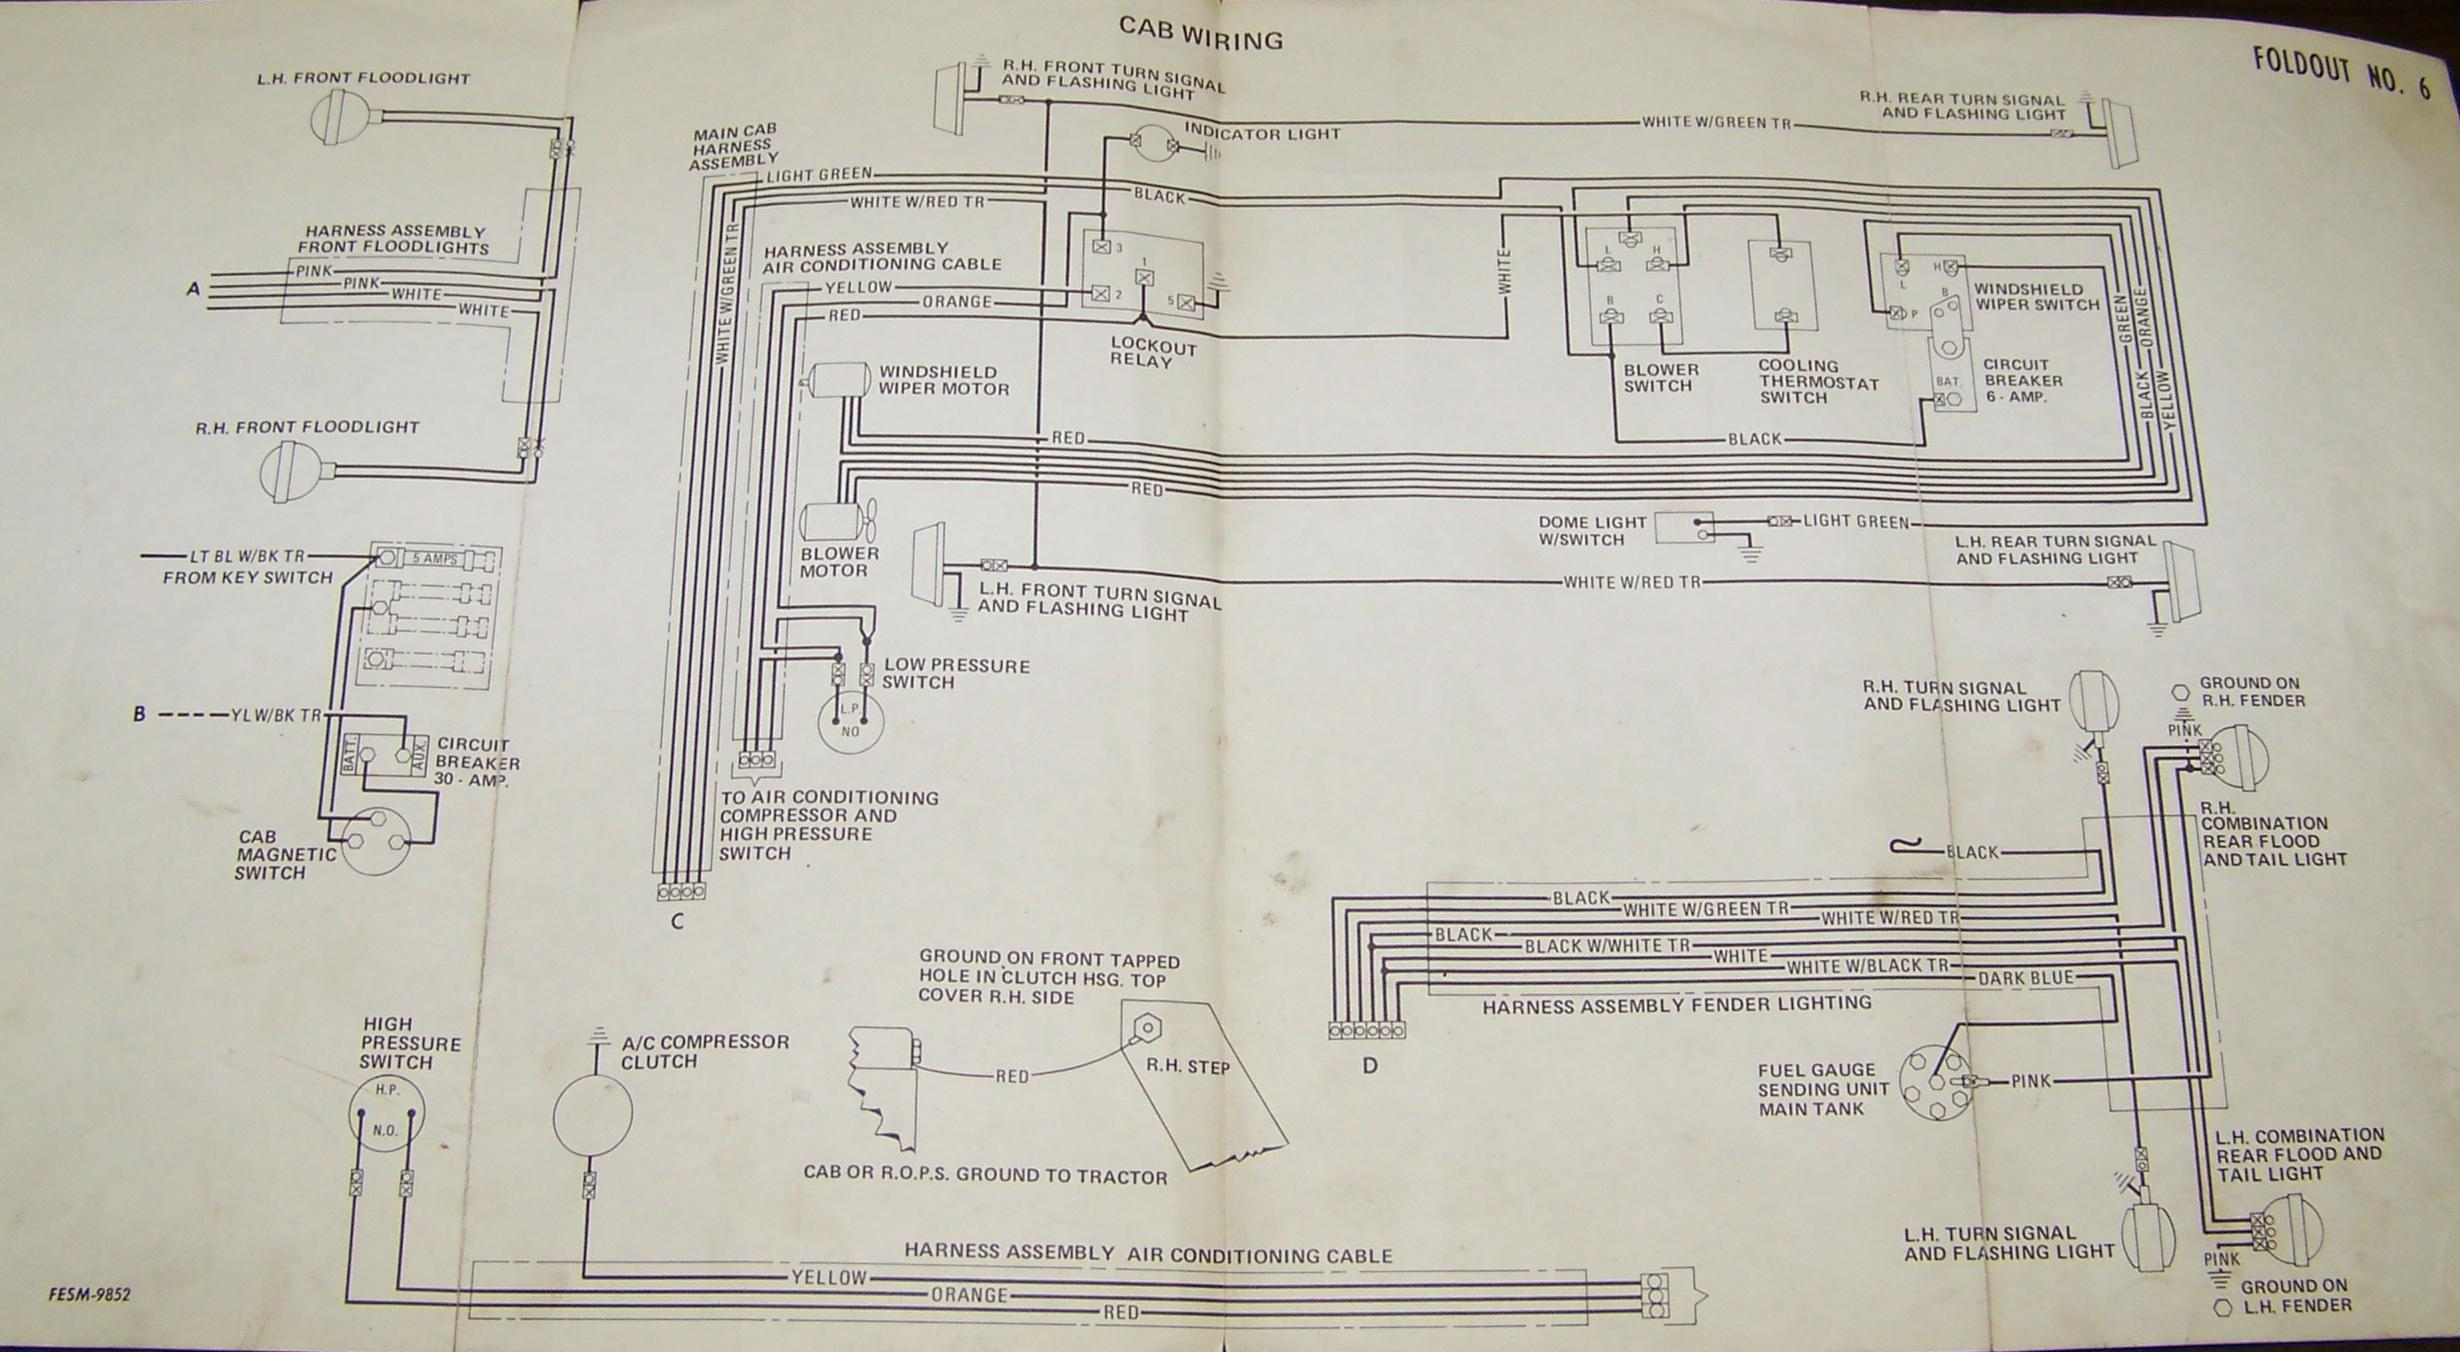 86series6 carter & gruenewald co inc ih farmall tractor electrical bobcat ct235 compact tractor wiring diagram at gsmx.co